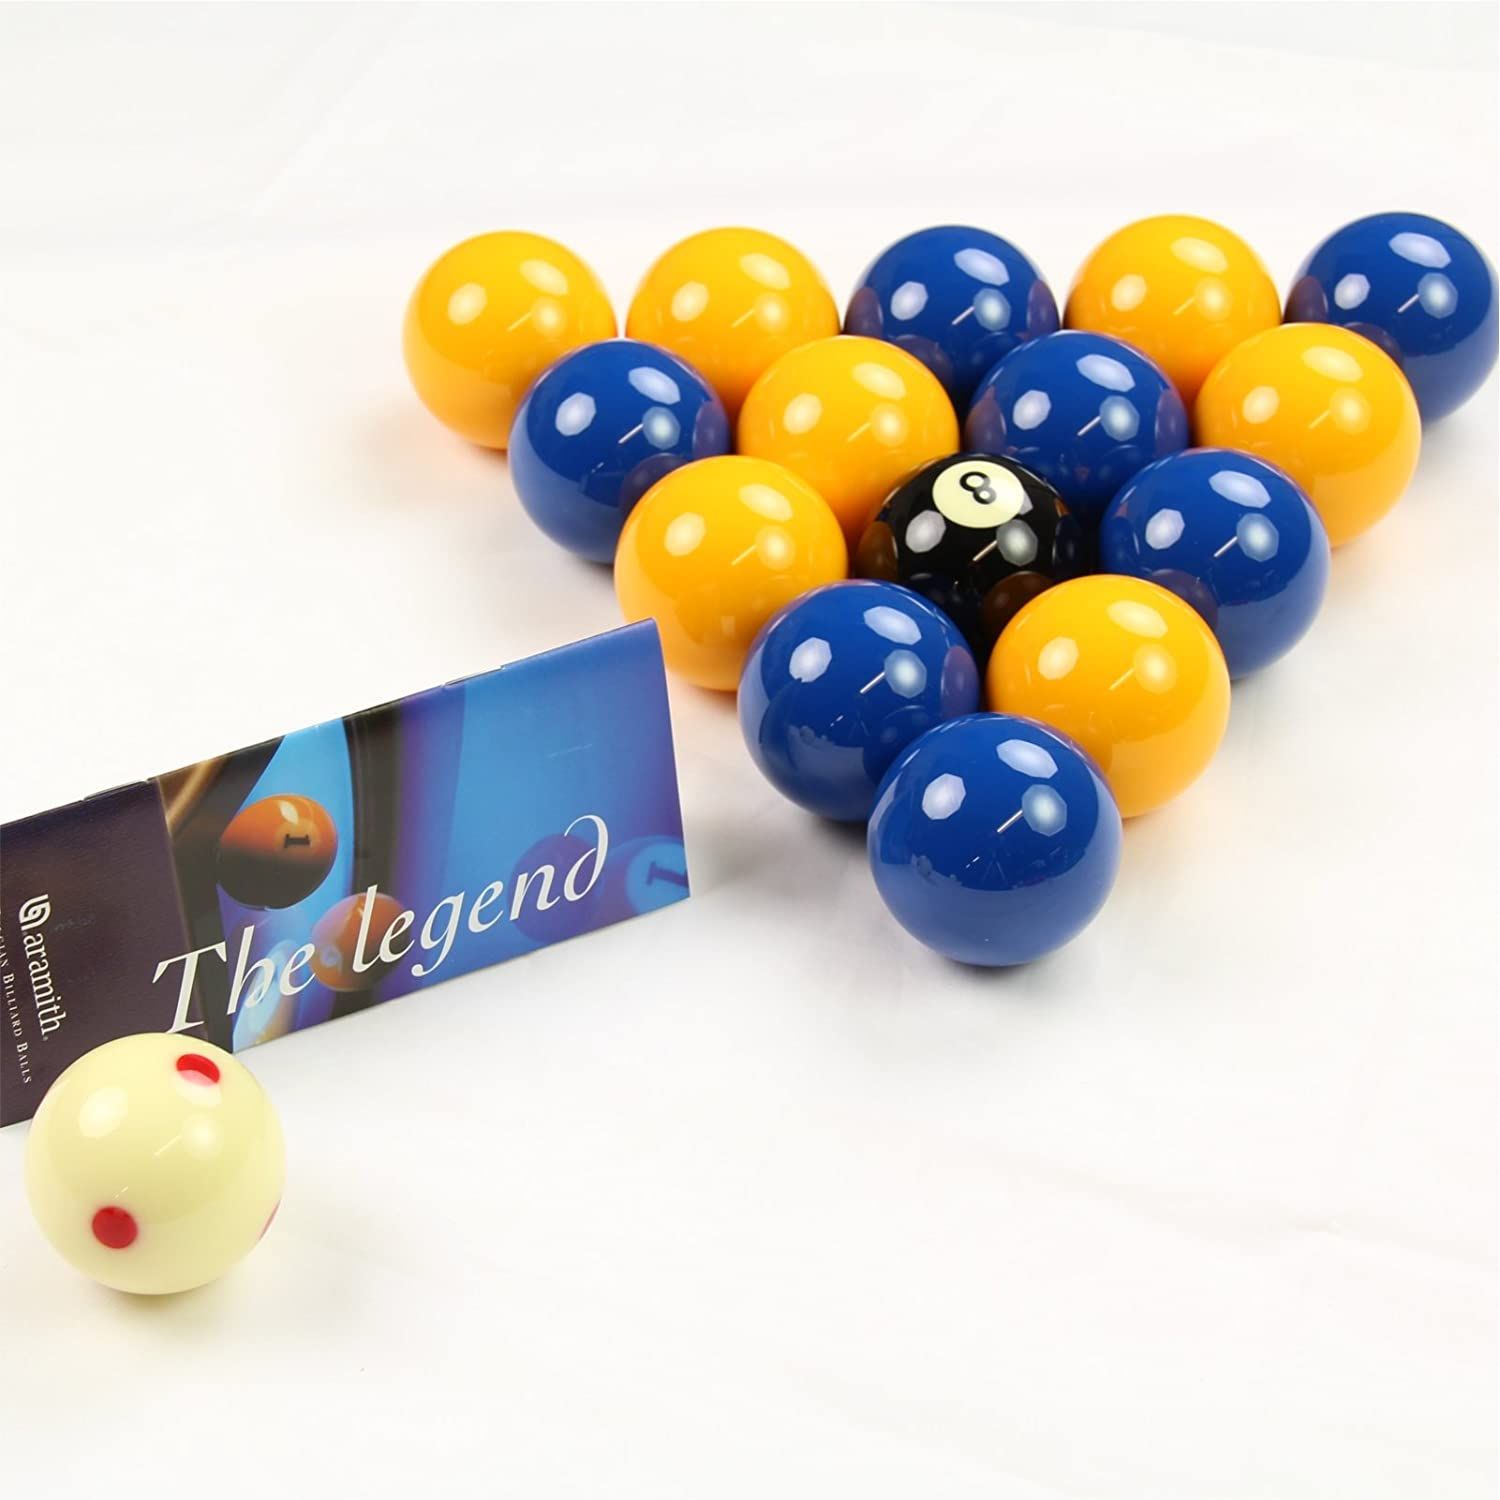 Aramith LEAGUE Edition YELLOW & BLUE Pool Balls - PRO CUP Spotted ...